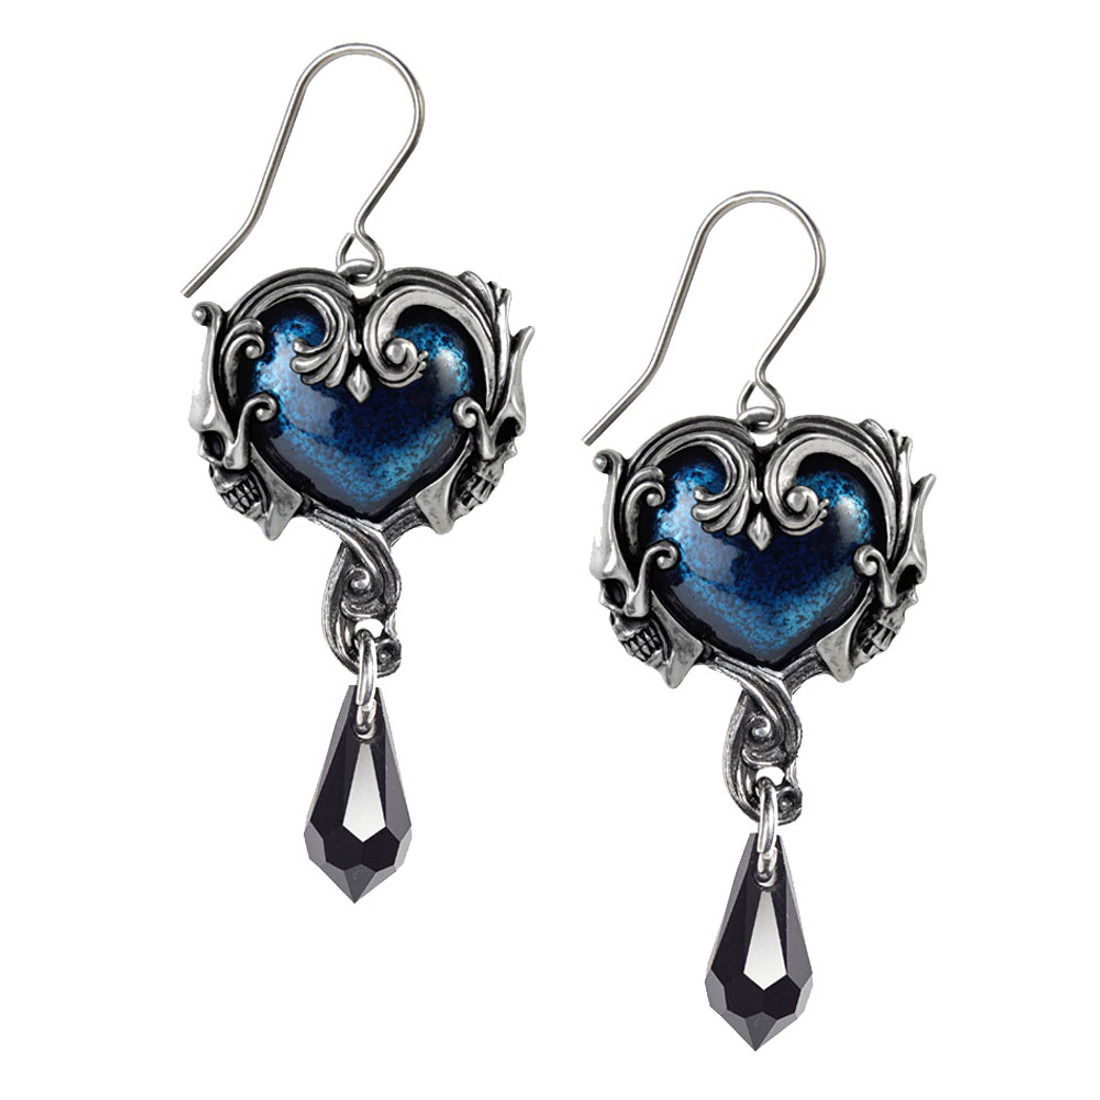 Alchemy Gothic Affaire Du Coeur Dangle Hook Earrings Pewter Jewelry E414